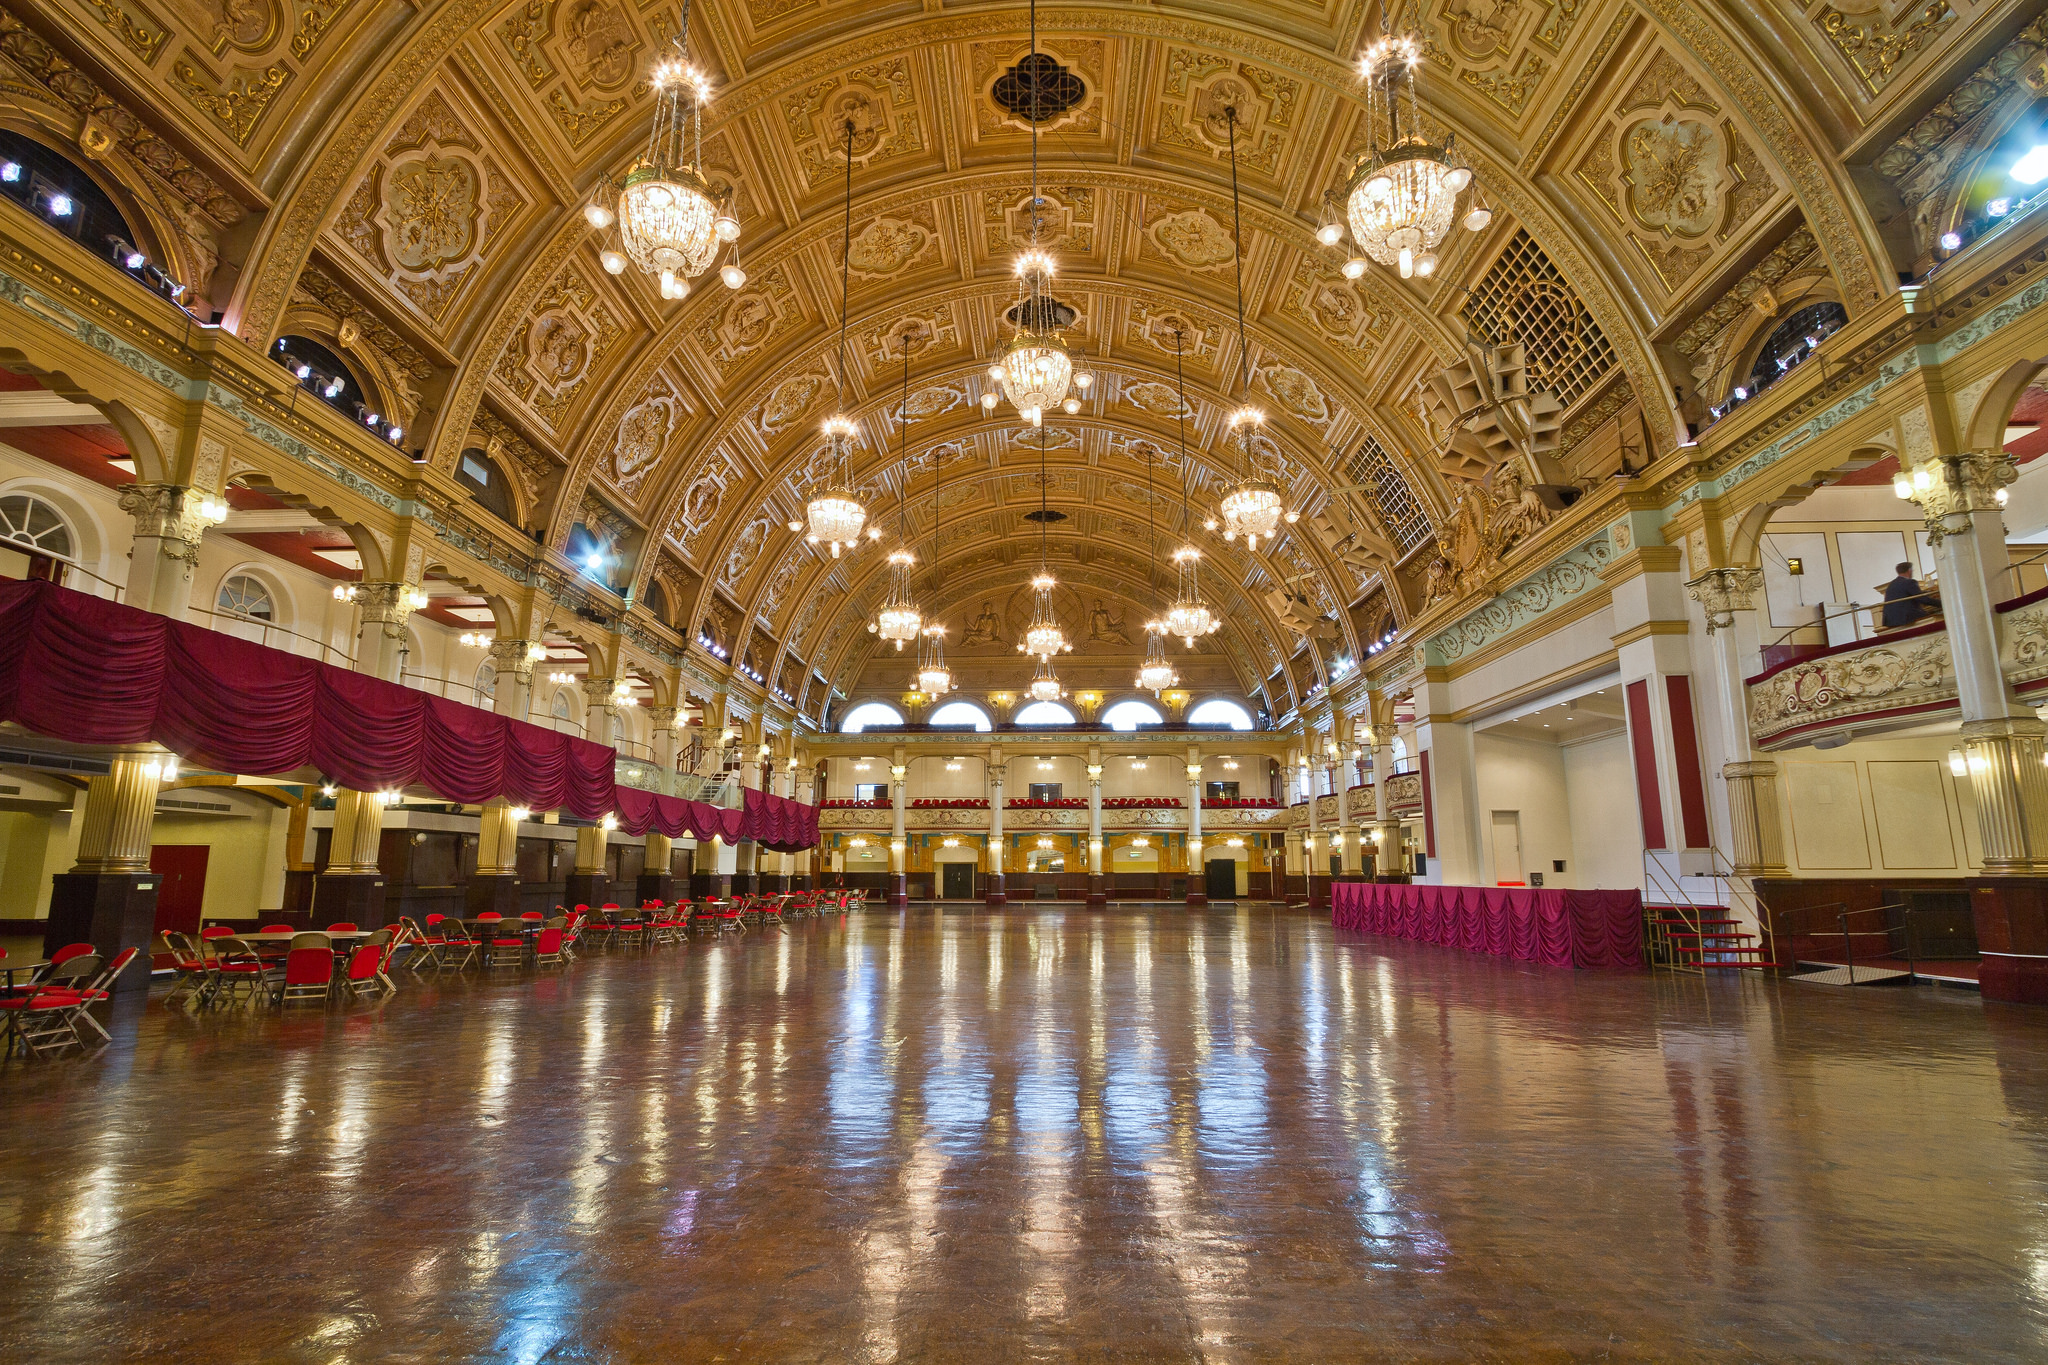 Ordinary Hotels Near The Winter Gardens Blackpool Part - 5: ... Marvelous Blackpool Hotels Near Winter Gardens Part - 12: Cover Photo  Full ...